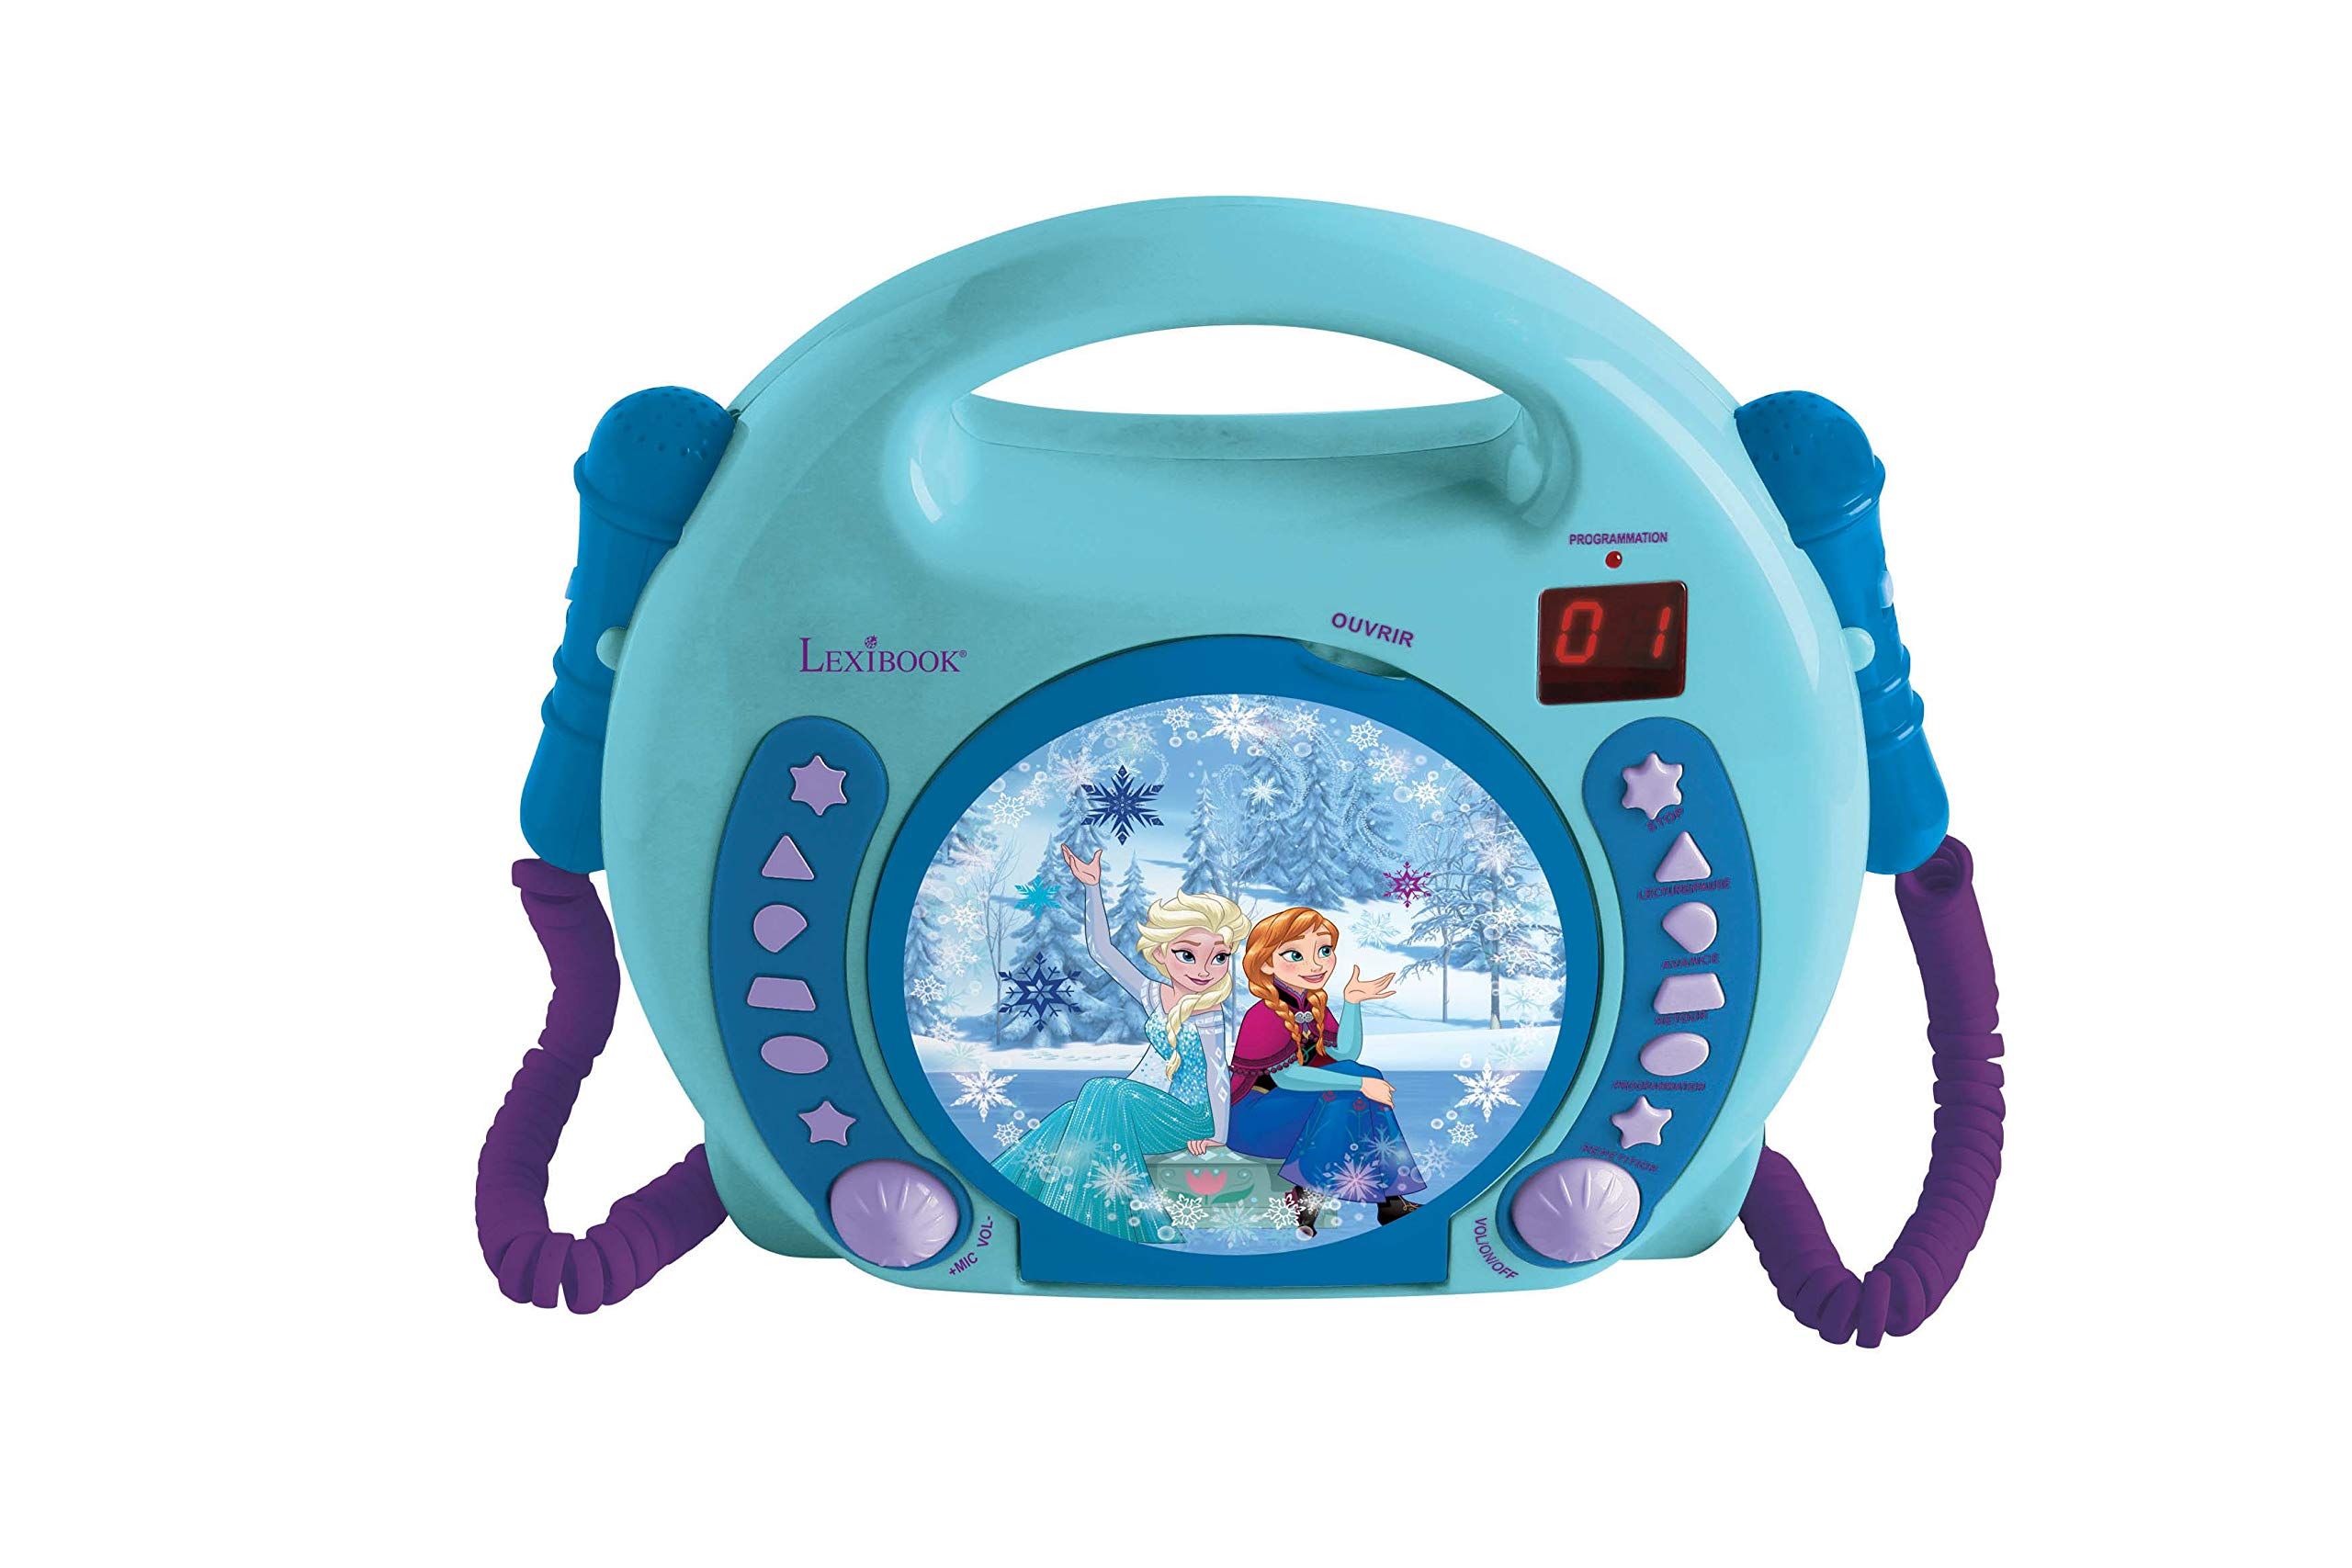 Disney Frozen CD Player with Microphones by Disney Frozen (Image #1)